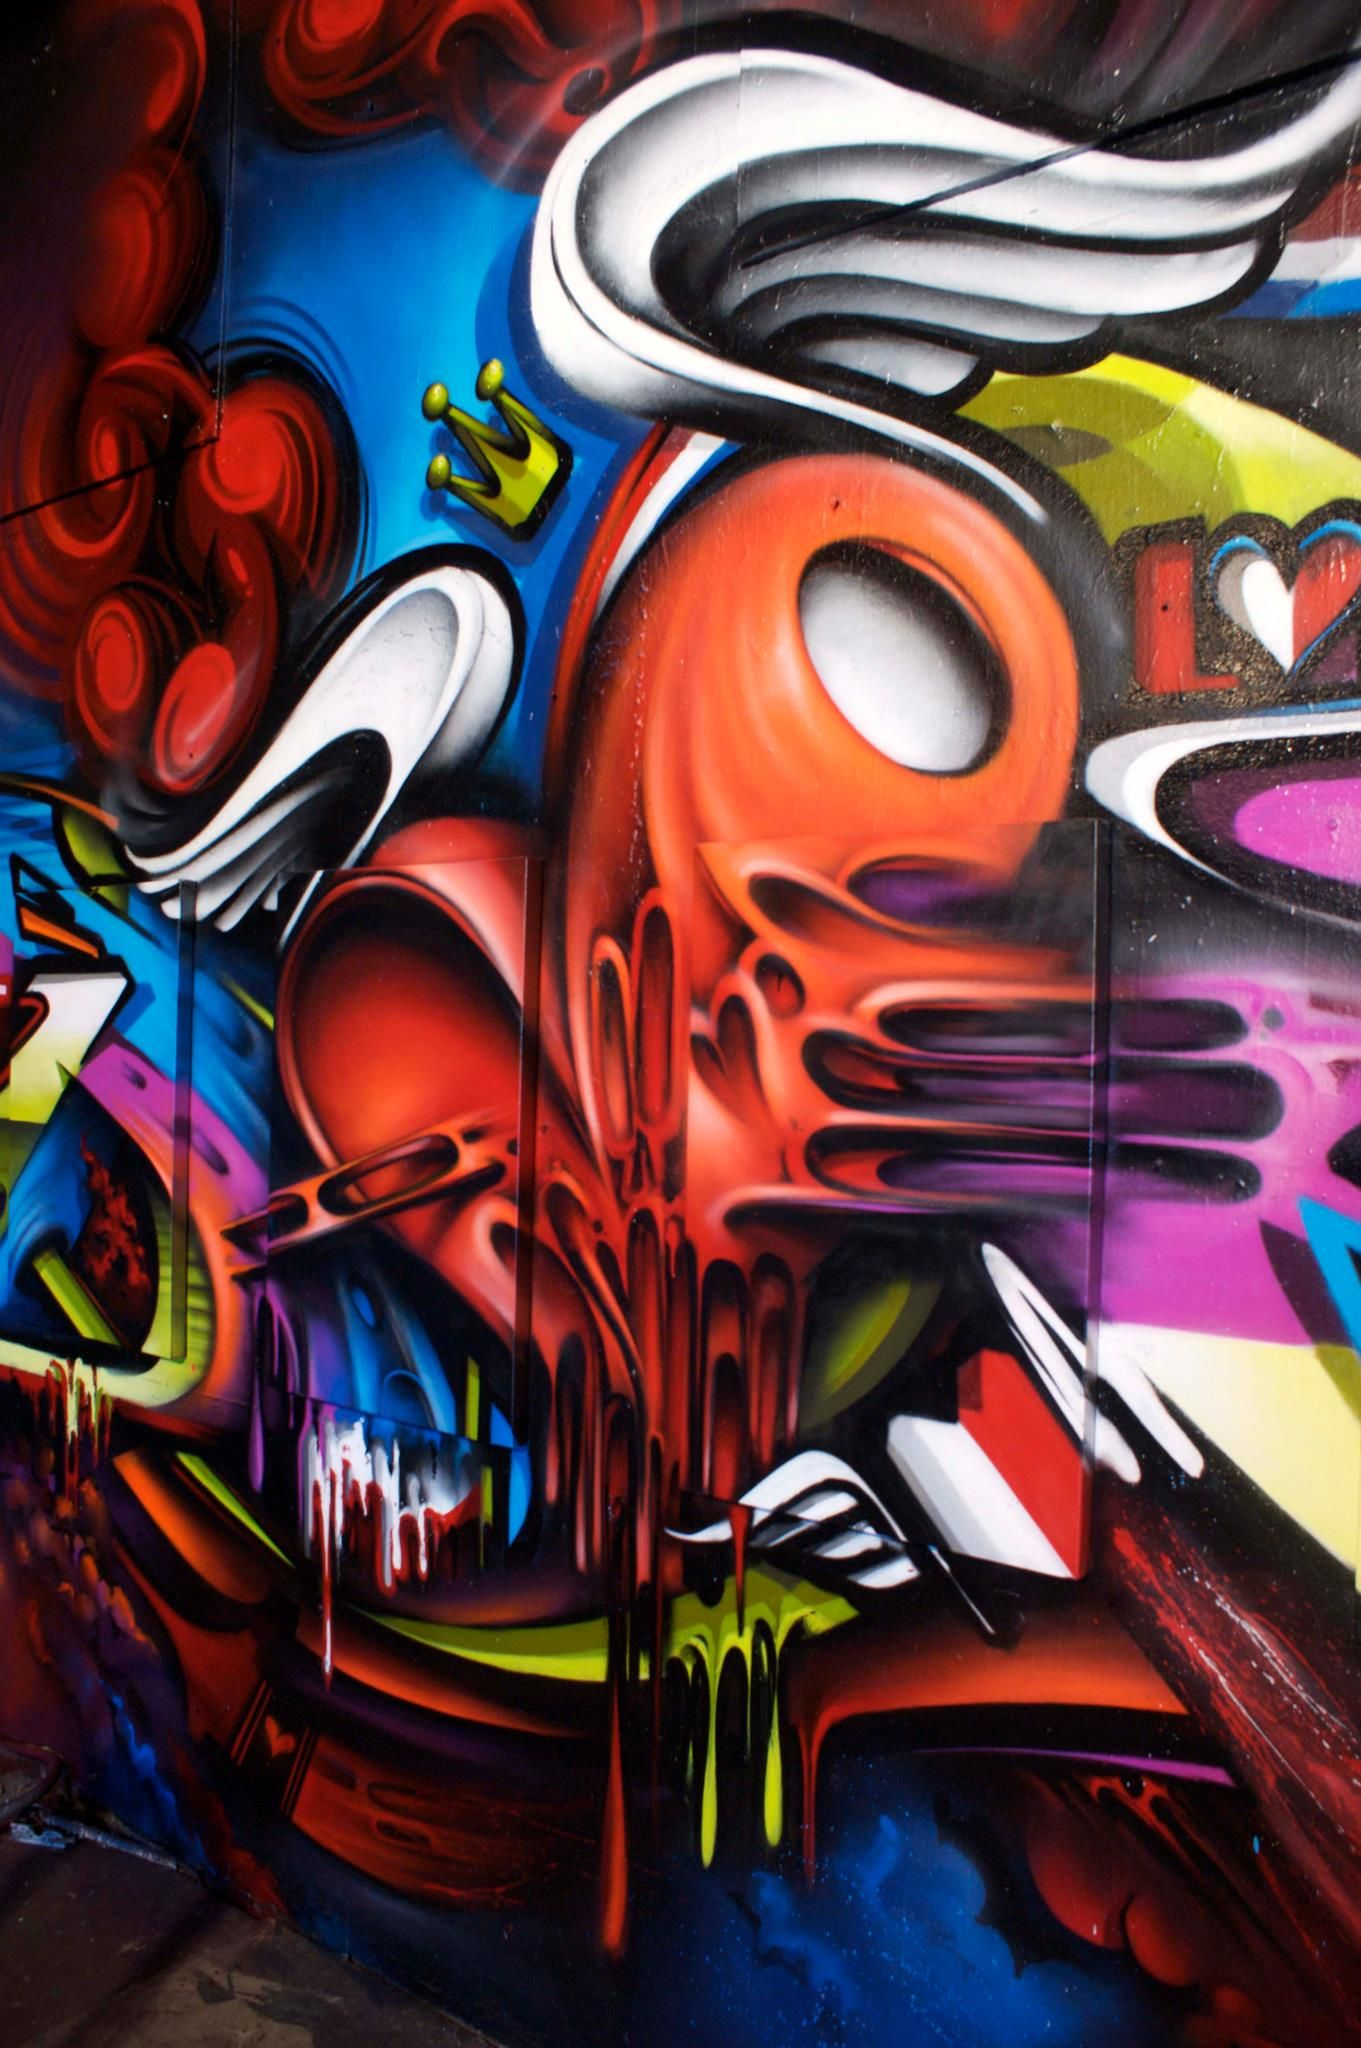 This graffiti is so awesome. It looks like it has so much